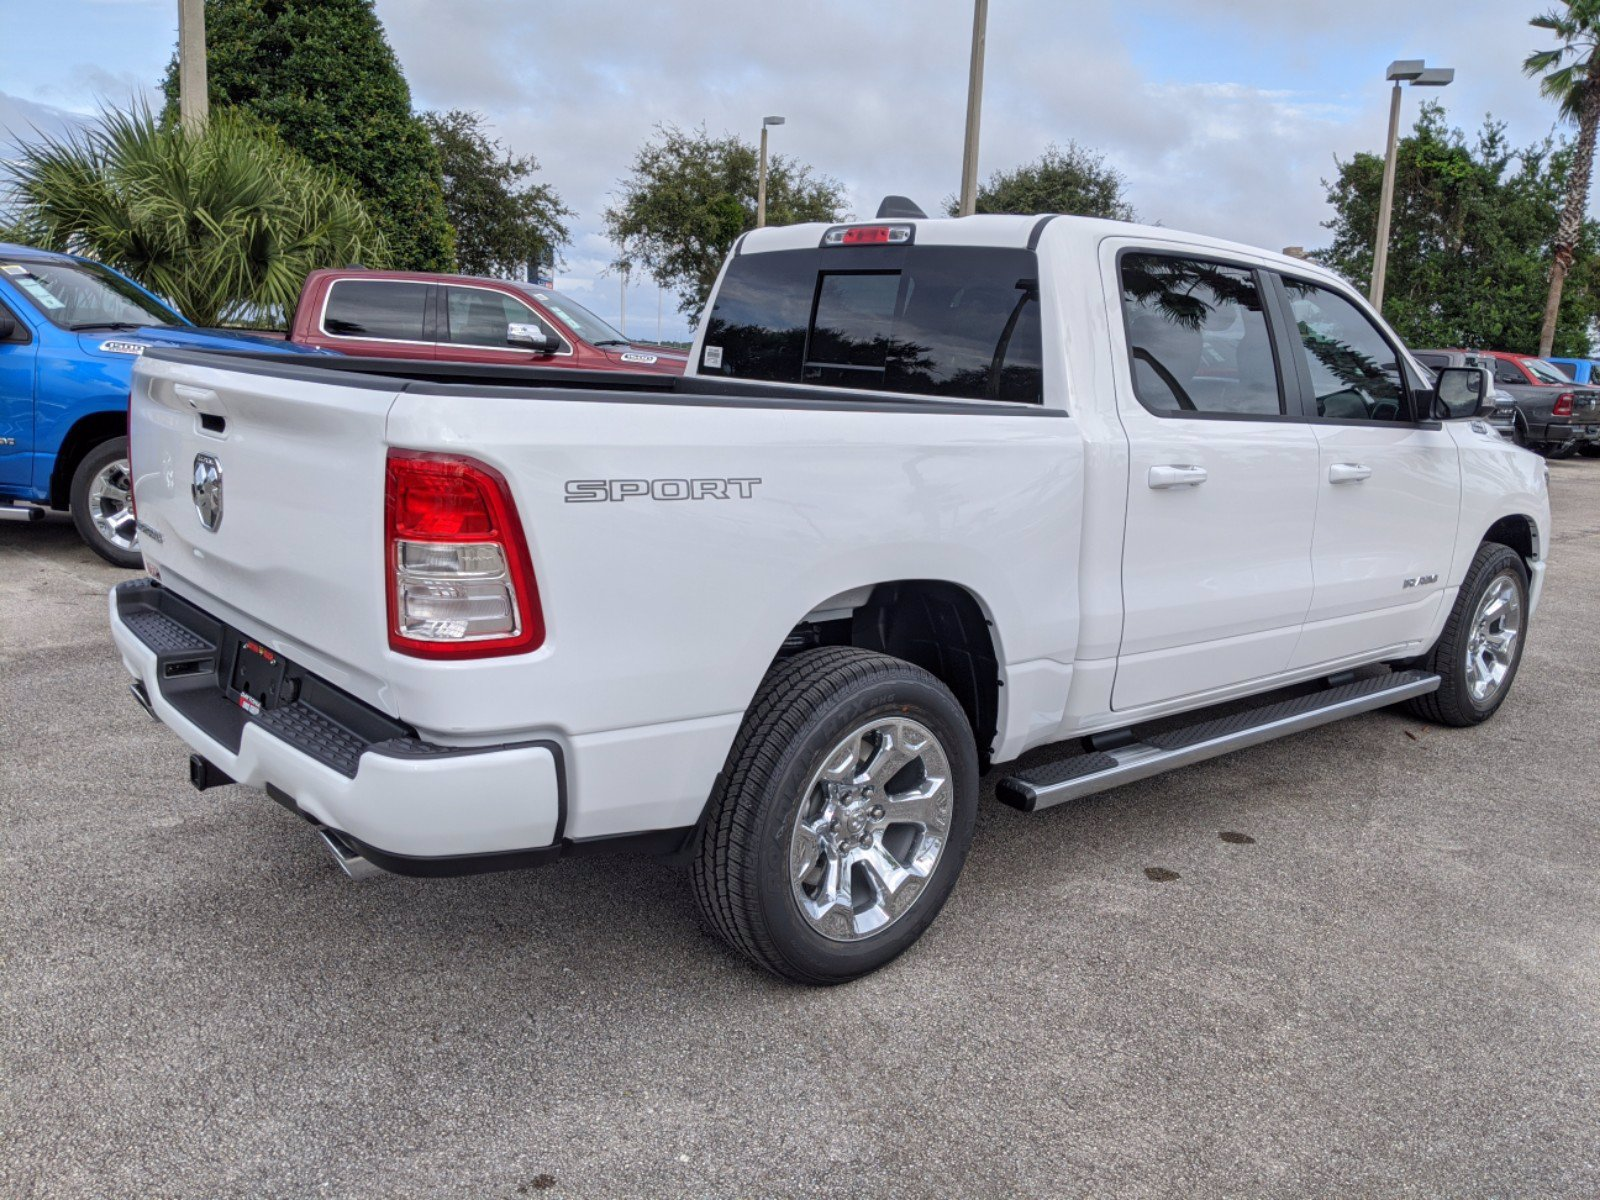 2021 Ram 1500 Crew Cab 4x2, Pickup #R21003 - photo 1